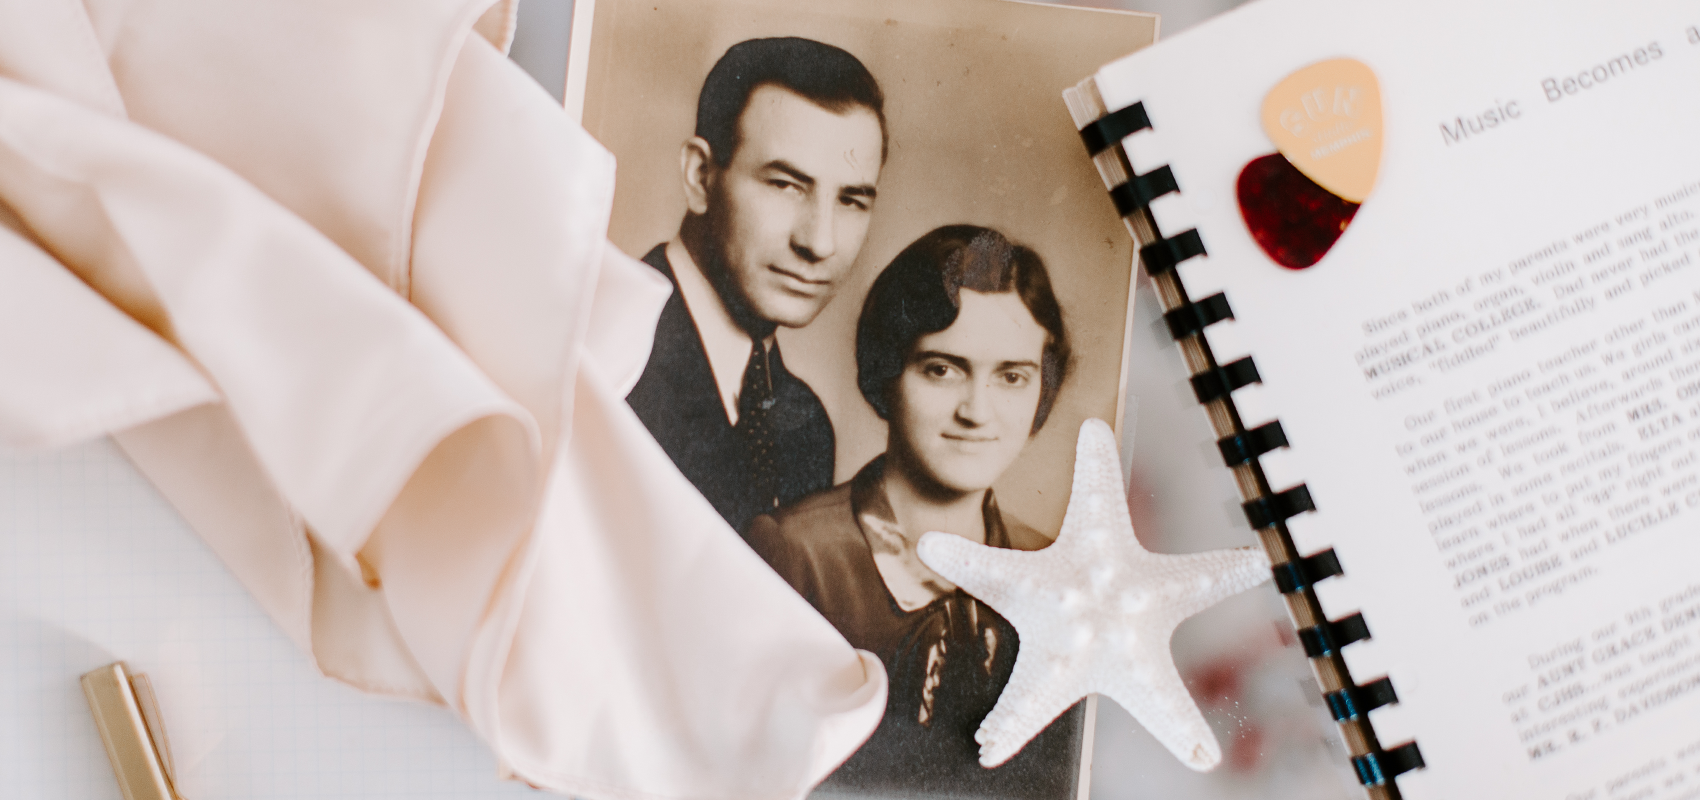 Images that represent Melody's grandmother, including a scarf, a photo of